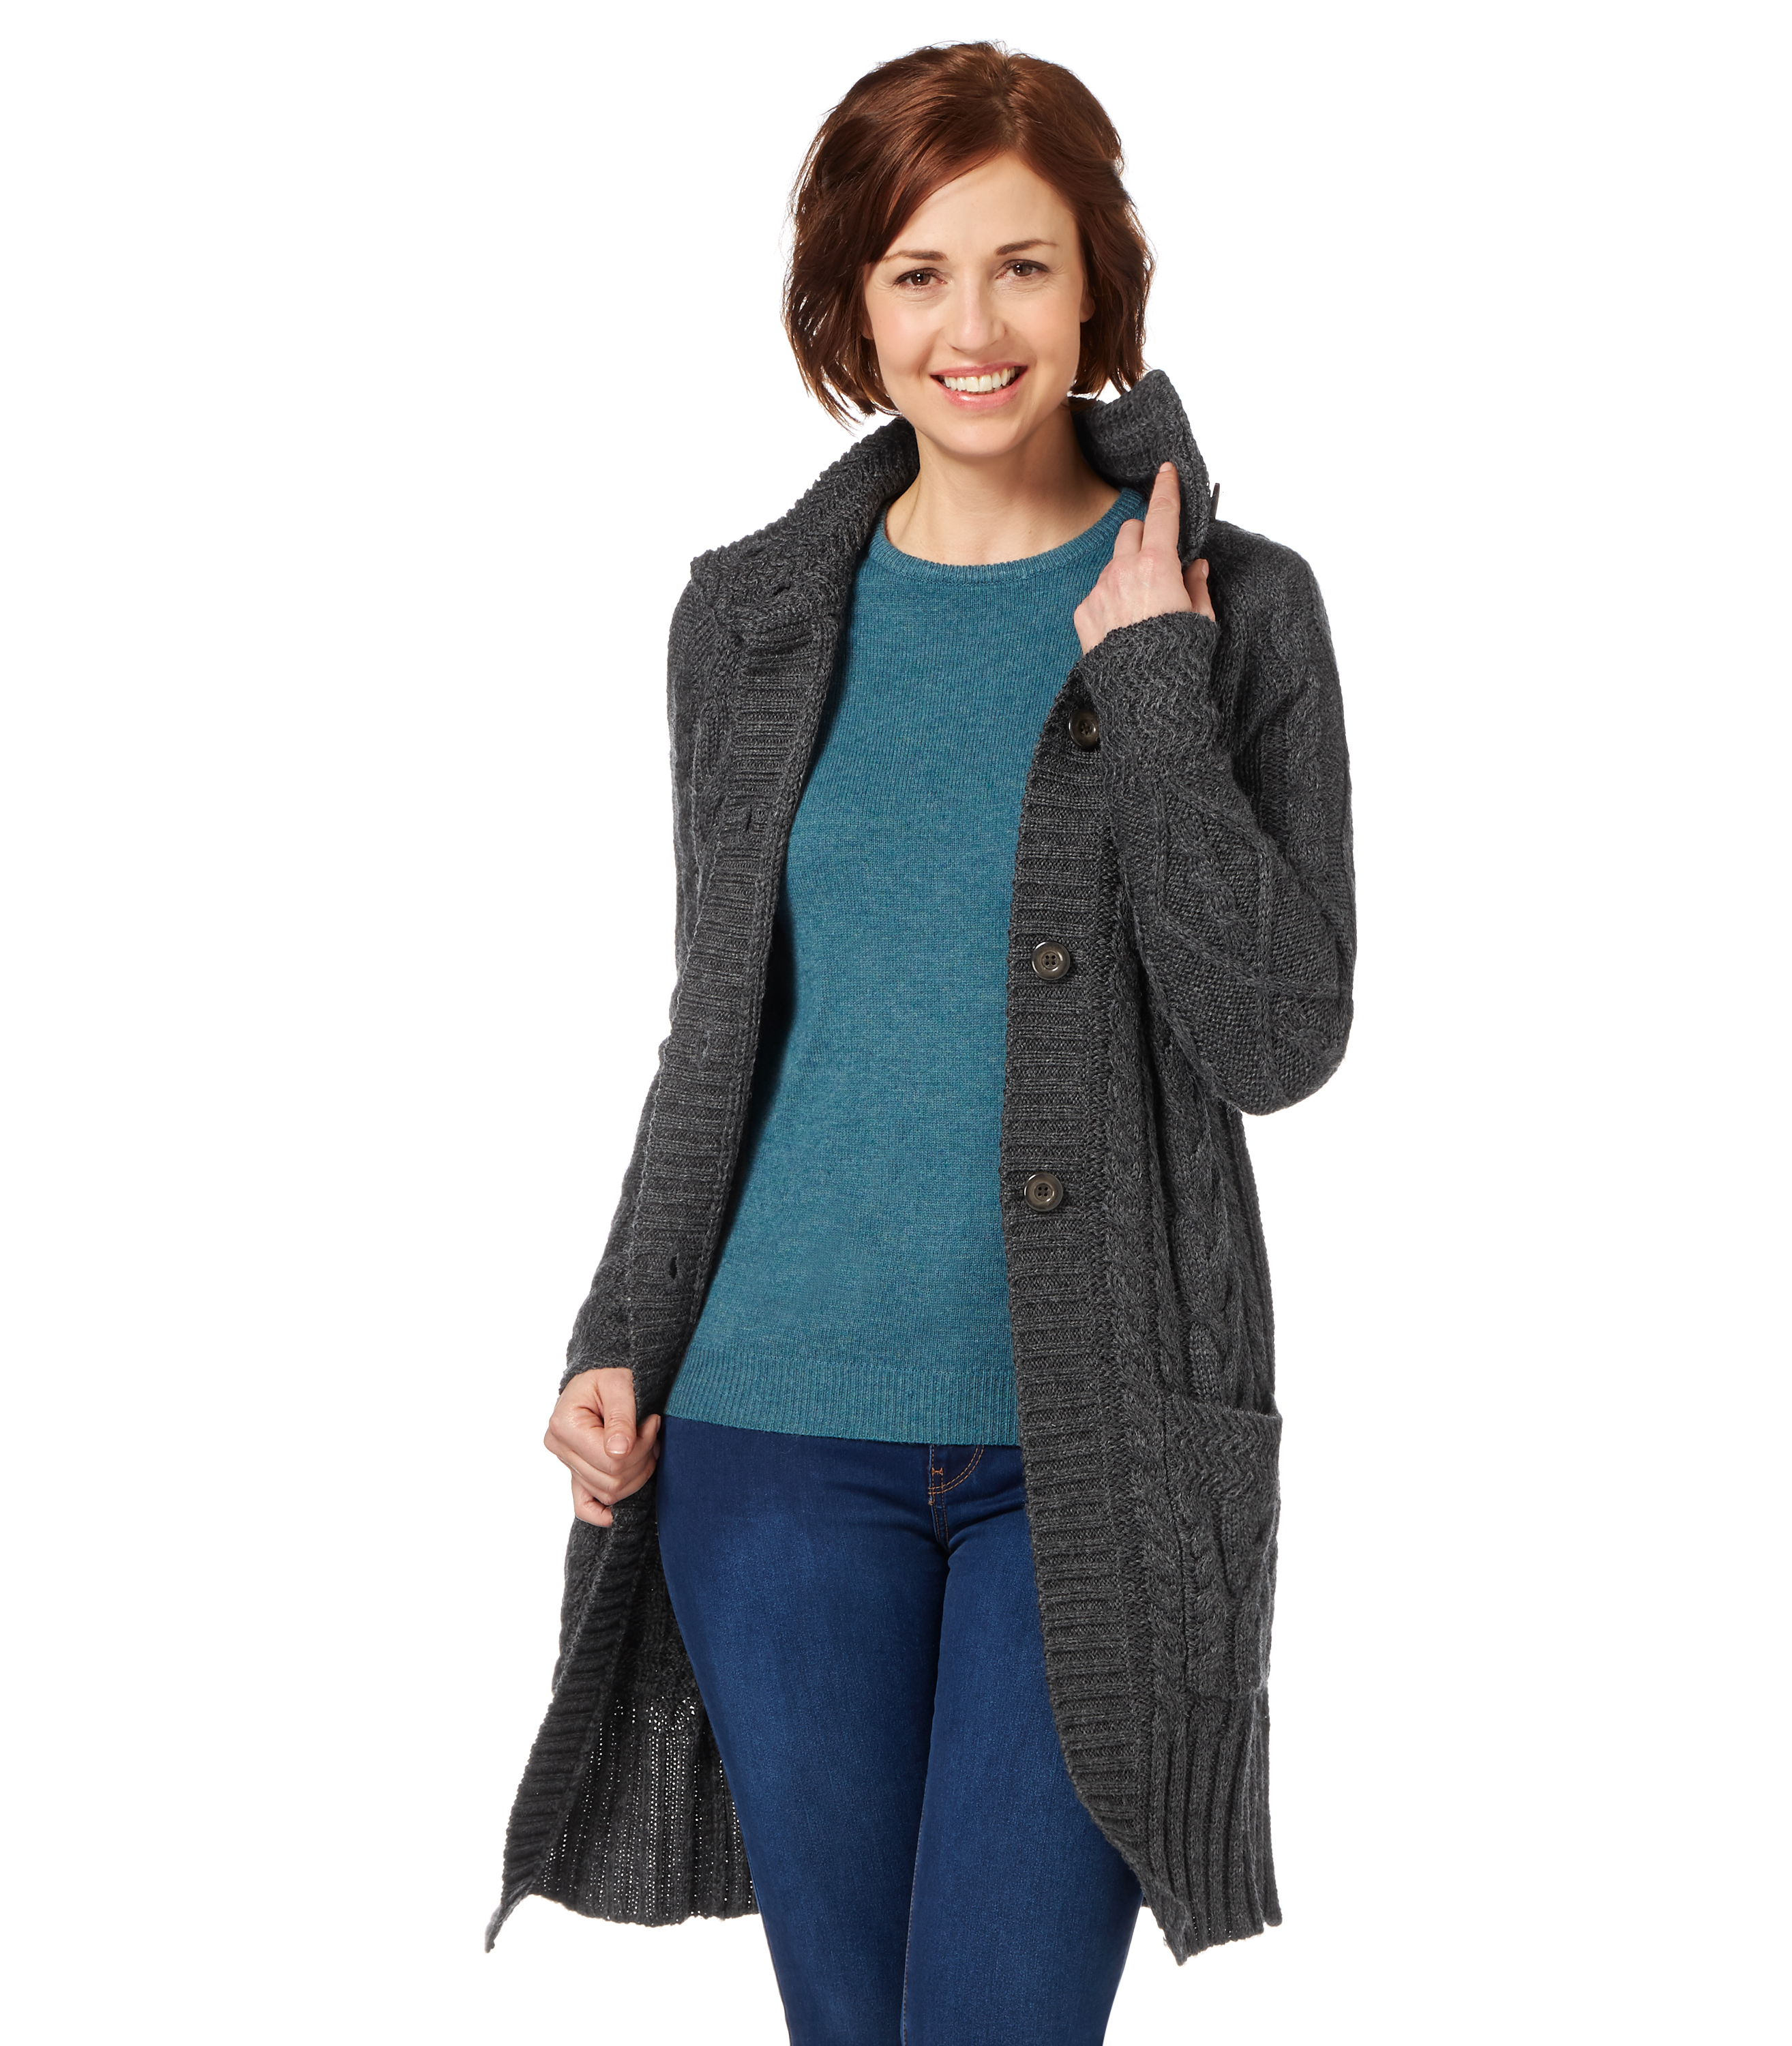 Irish cardigans in super soft merino wool, as well as modern styles for him such as shawl collar sweaters and on-trend looks for her including stylish Aran coats and .